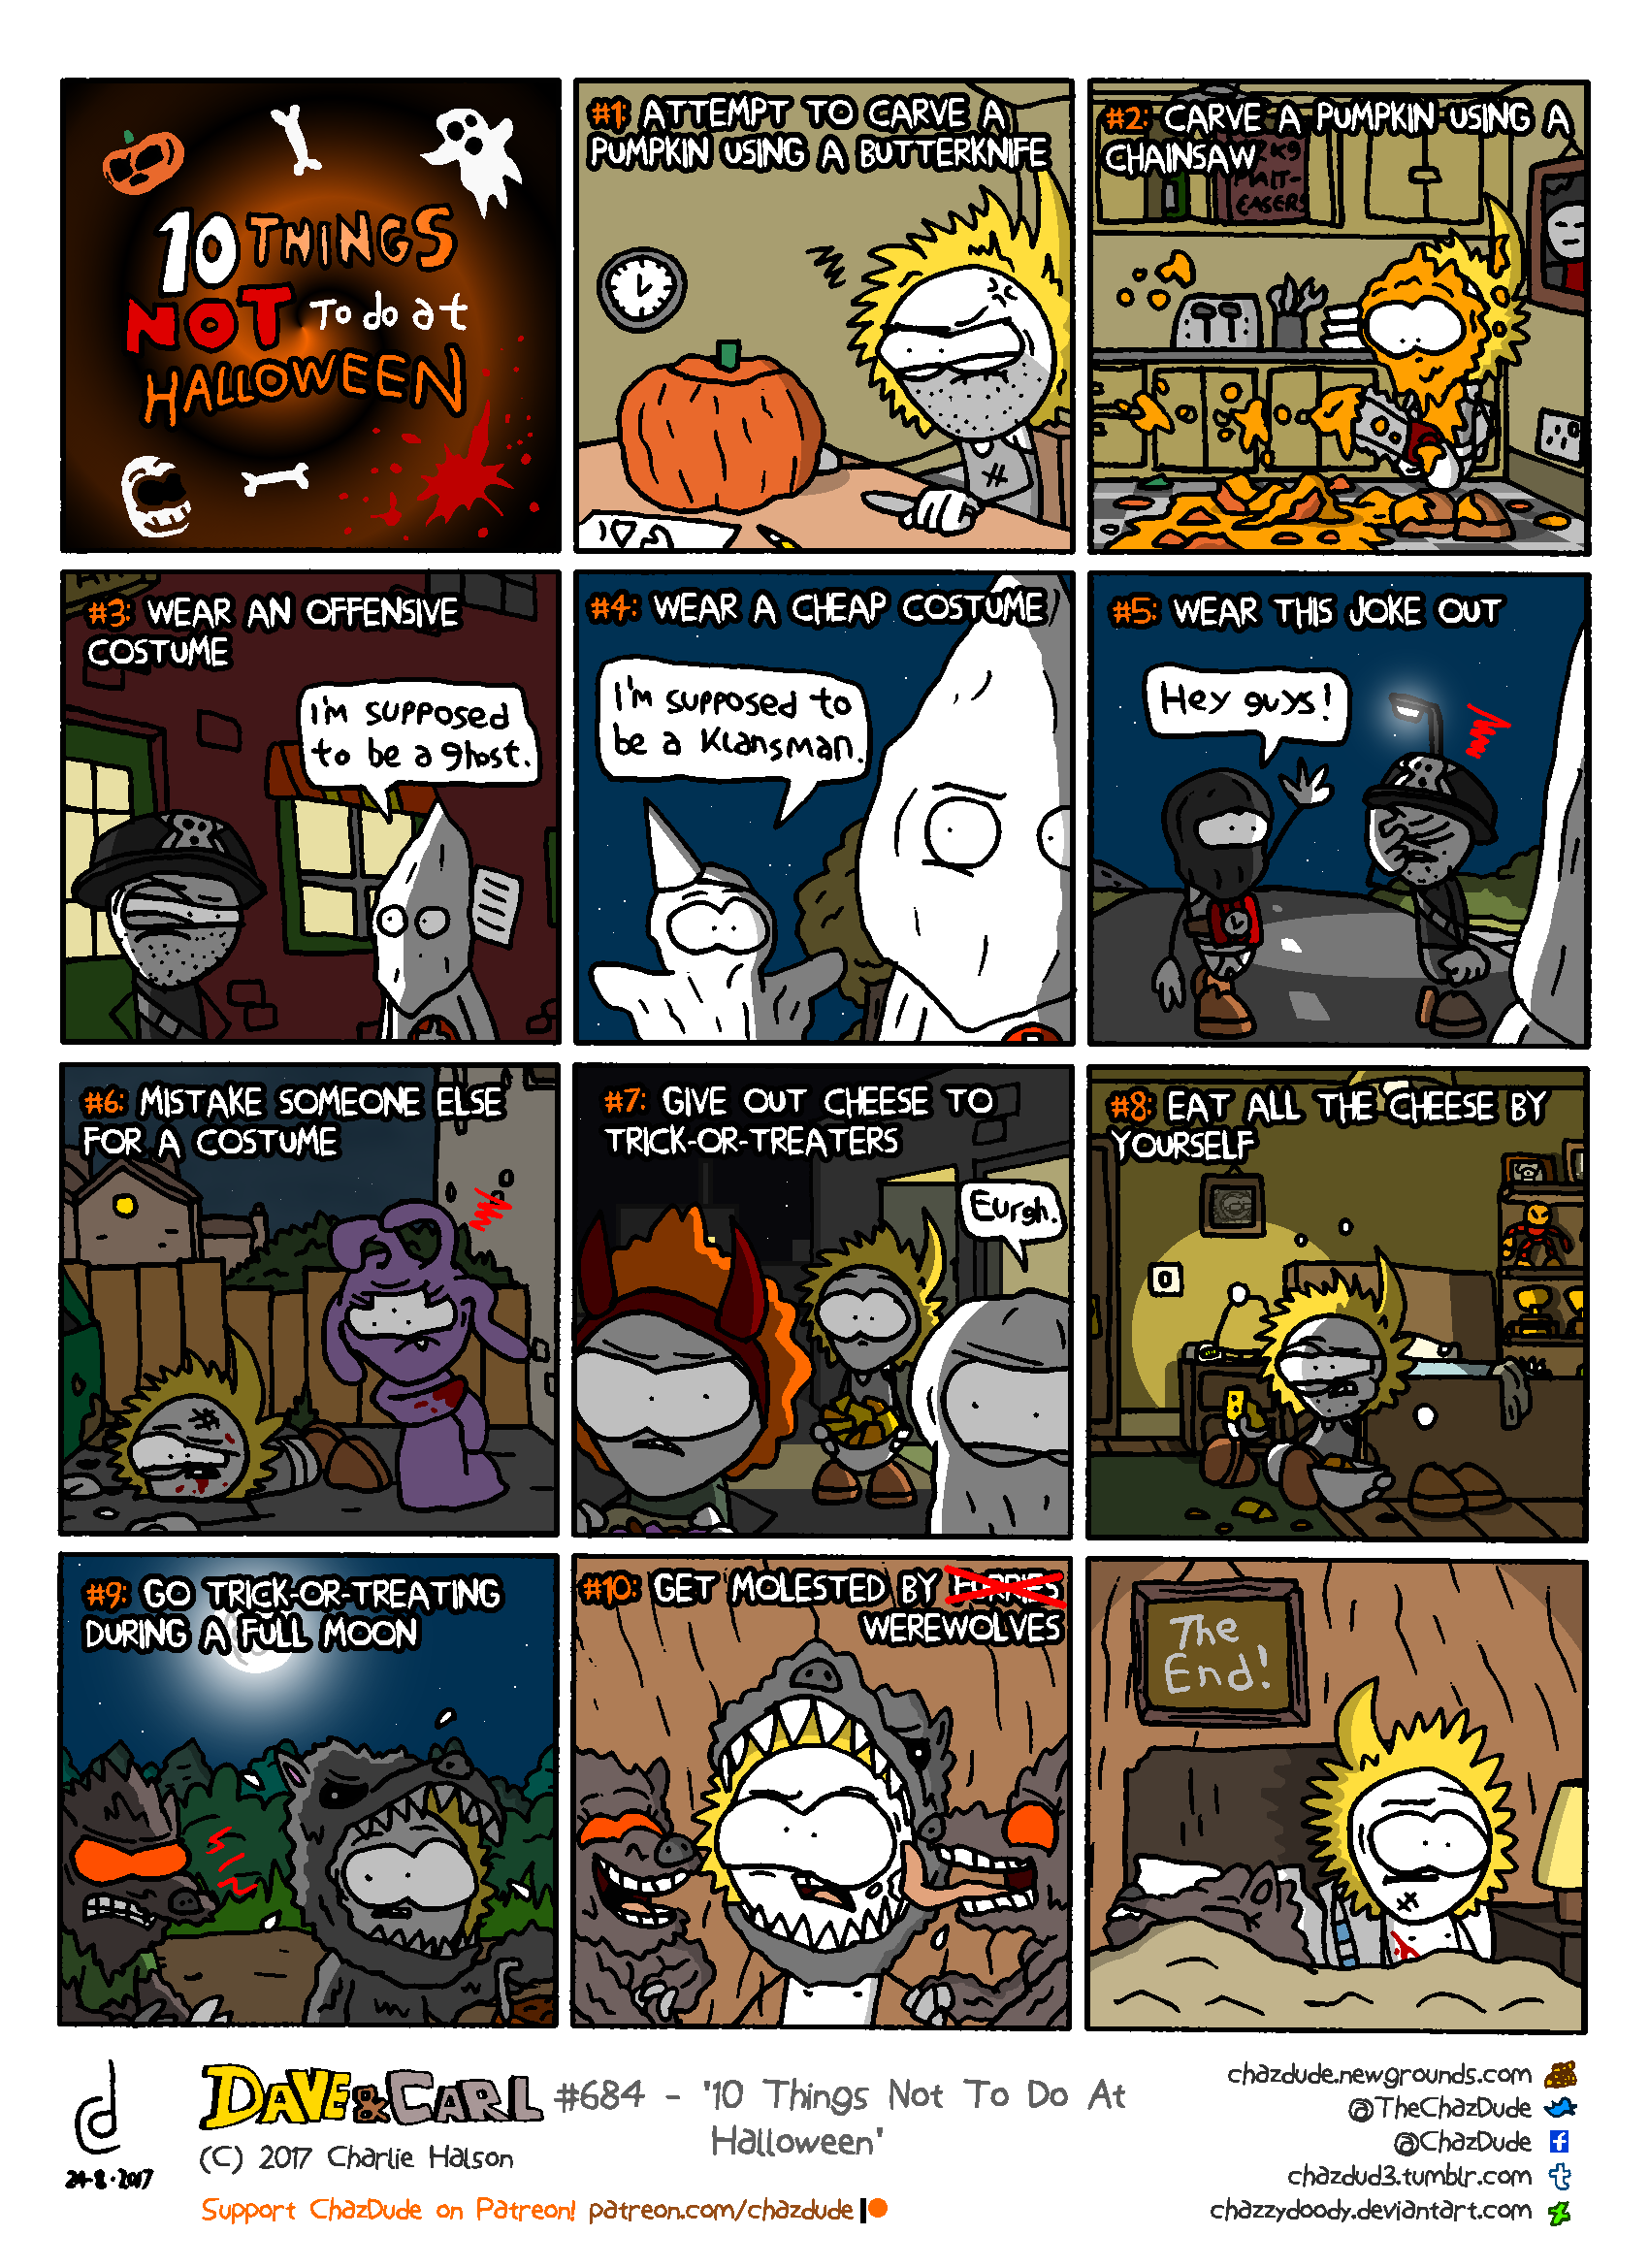 10 Things Not To Do At Halloween